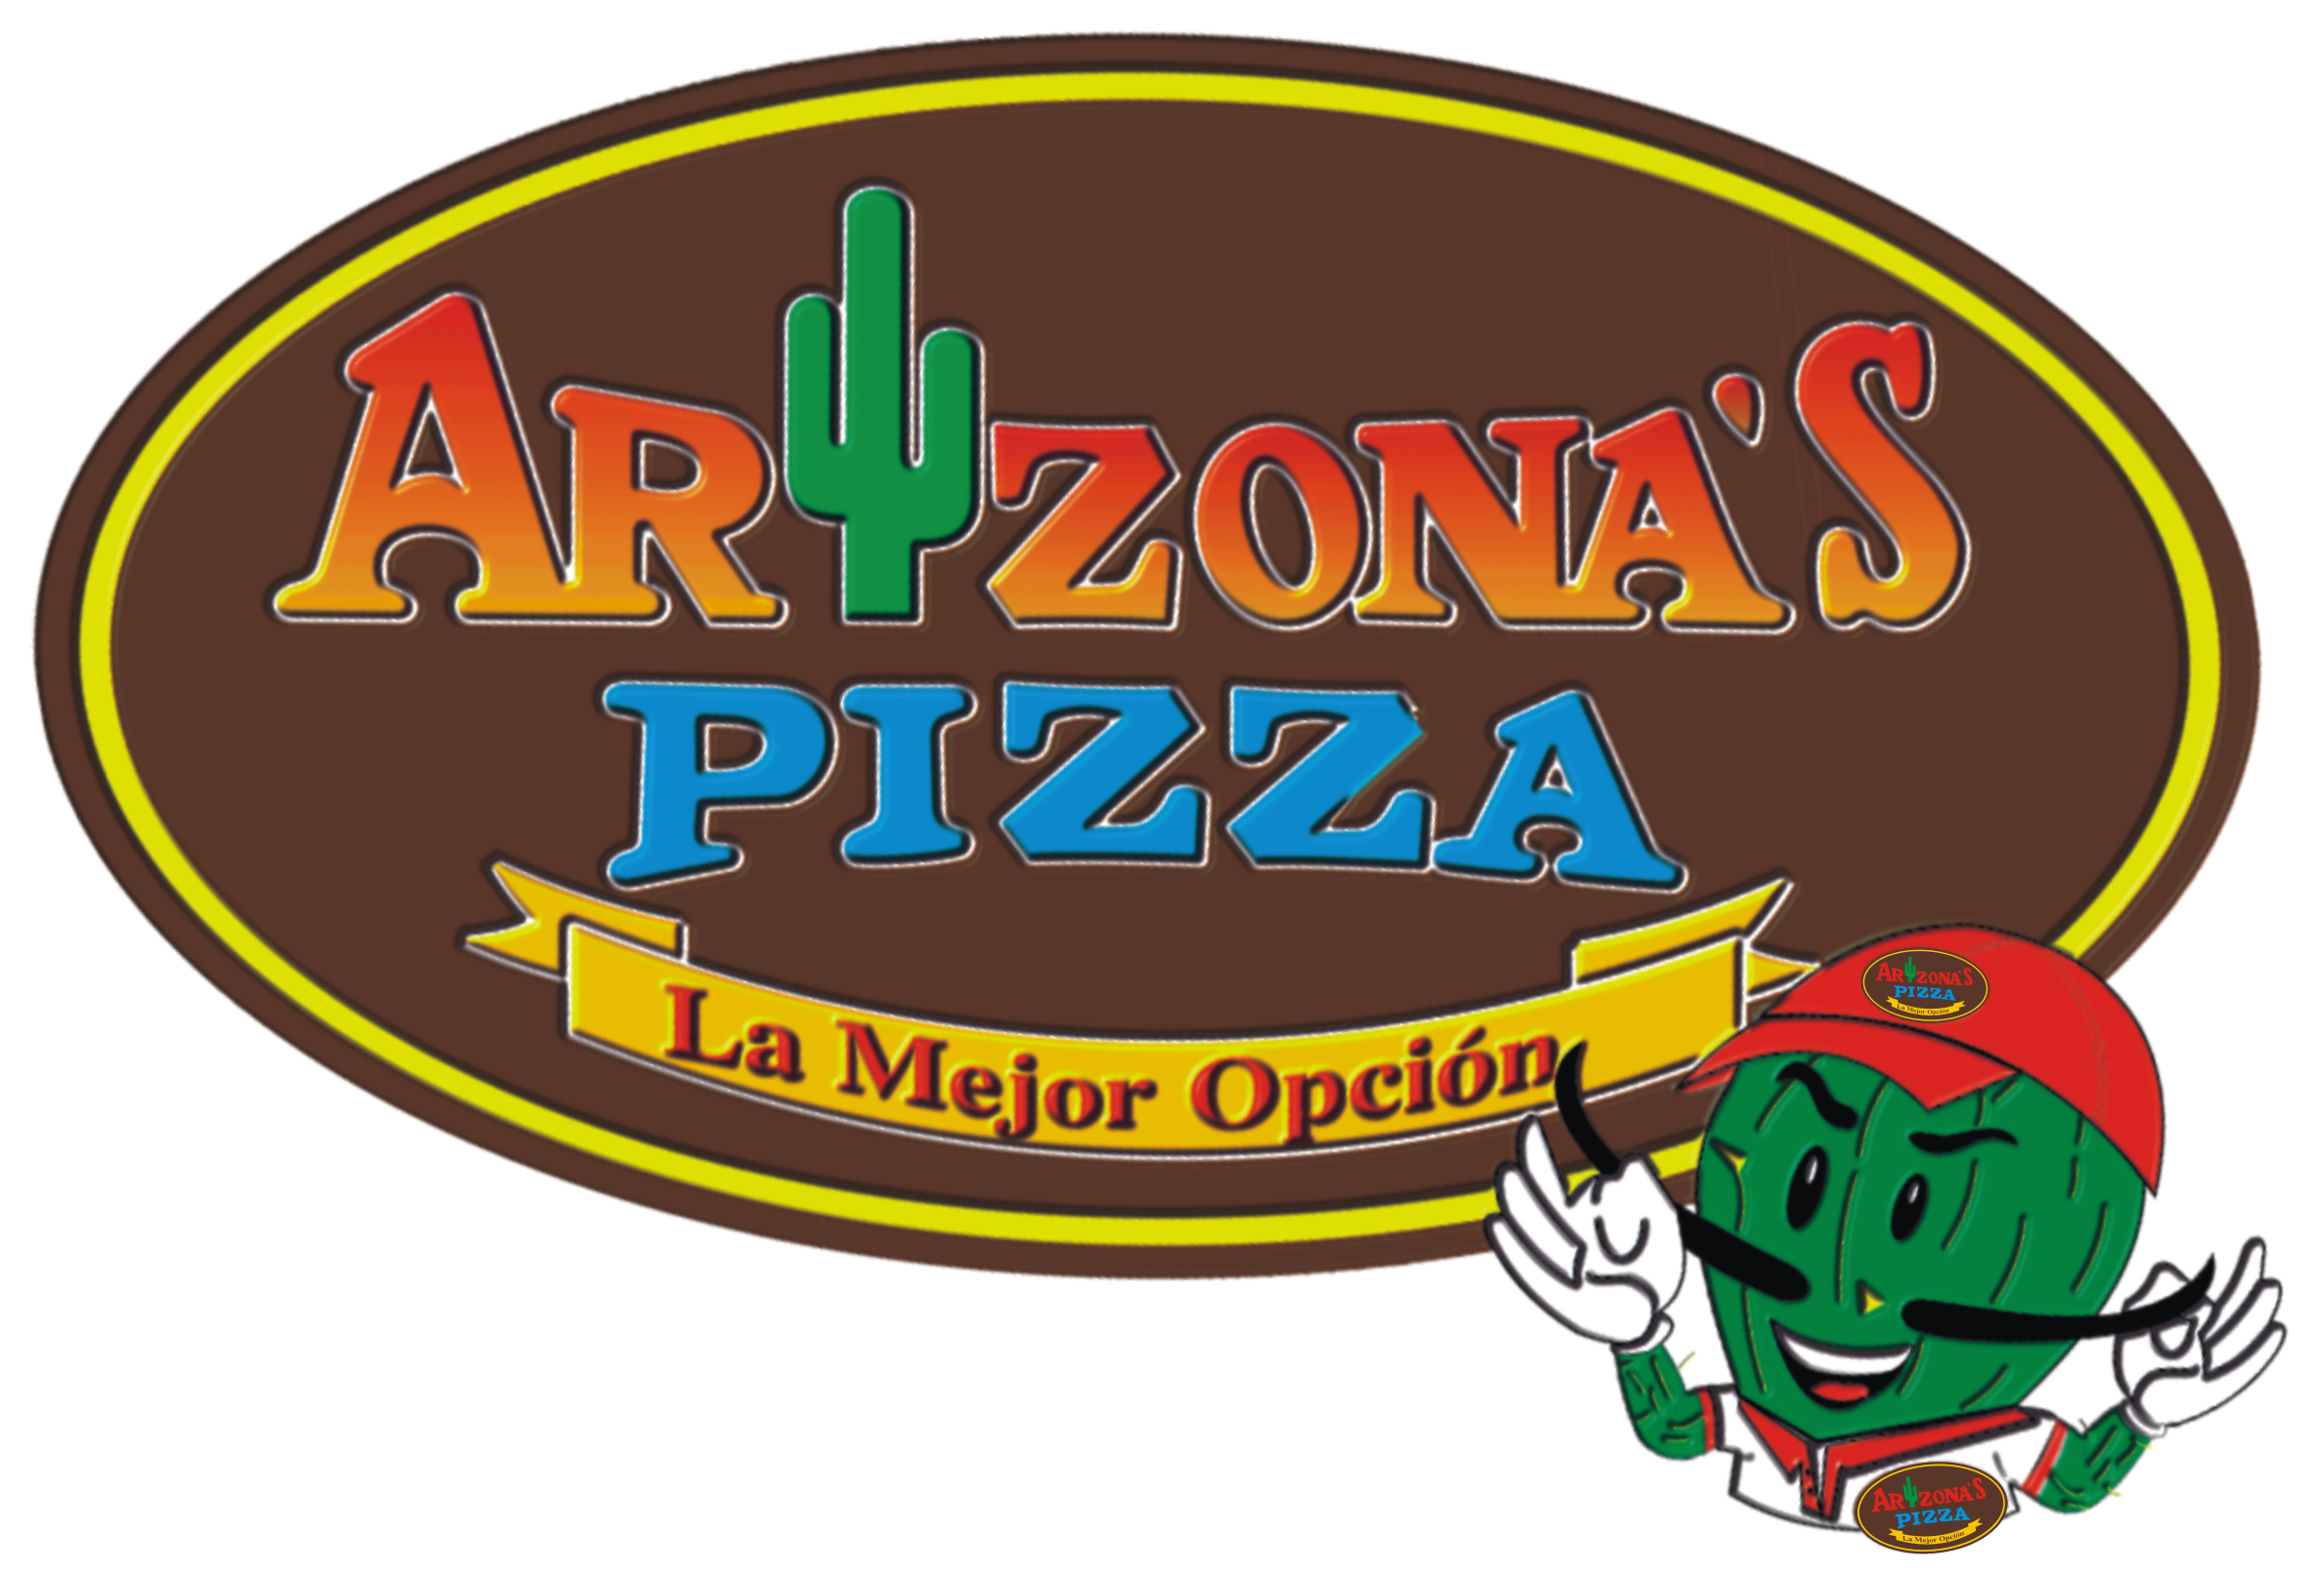 Venta de Pizzas - Arizona's Pizza - Durango